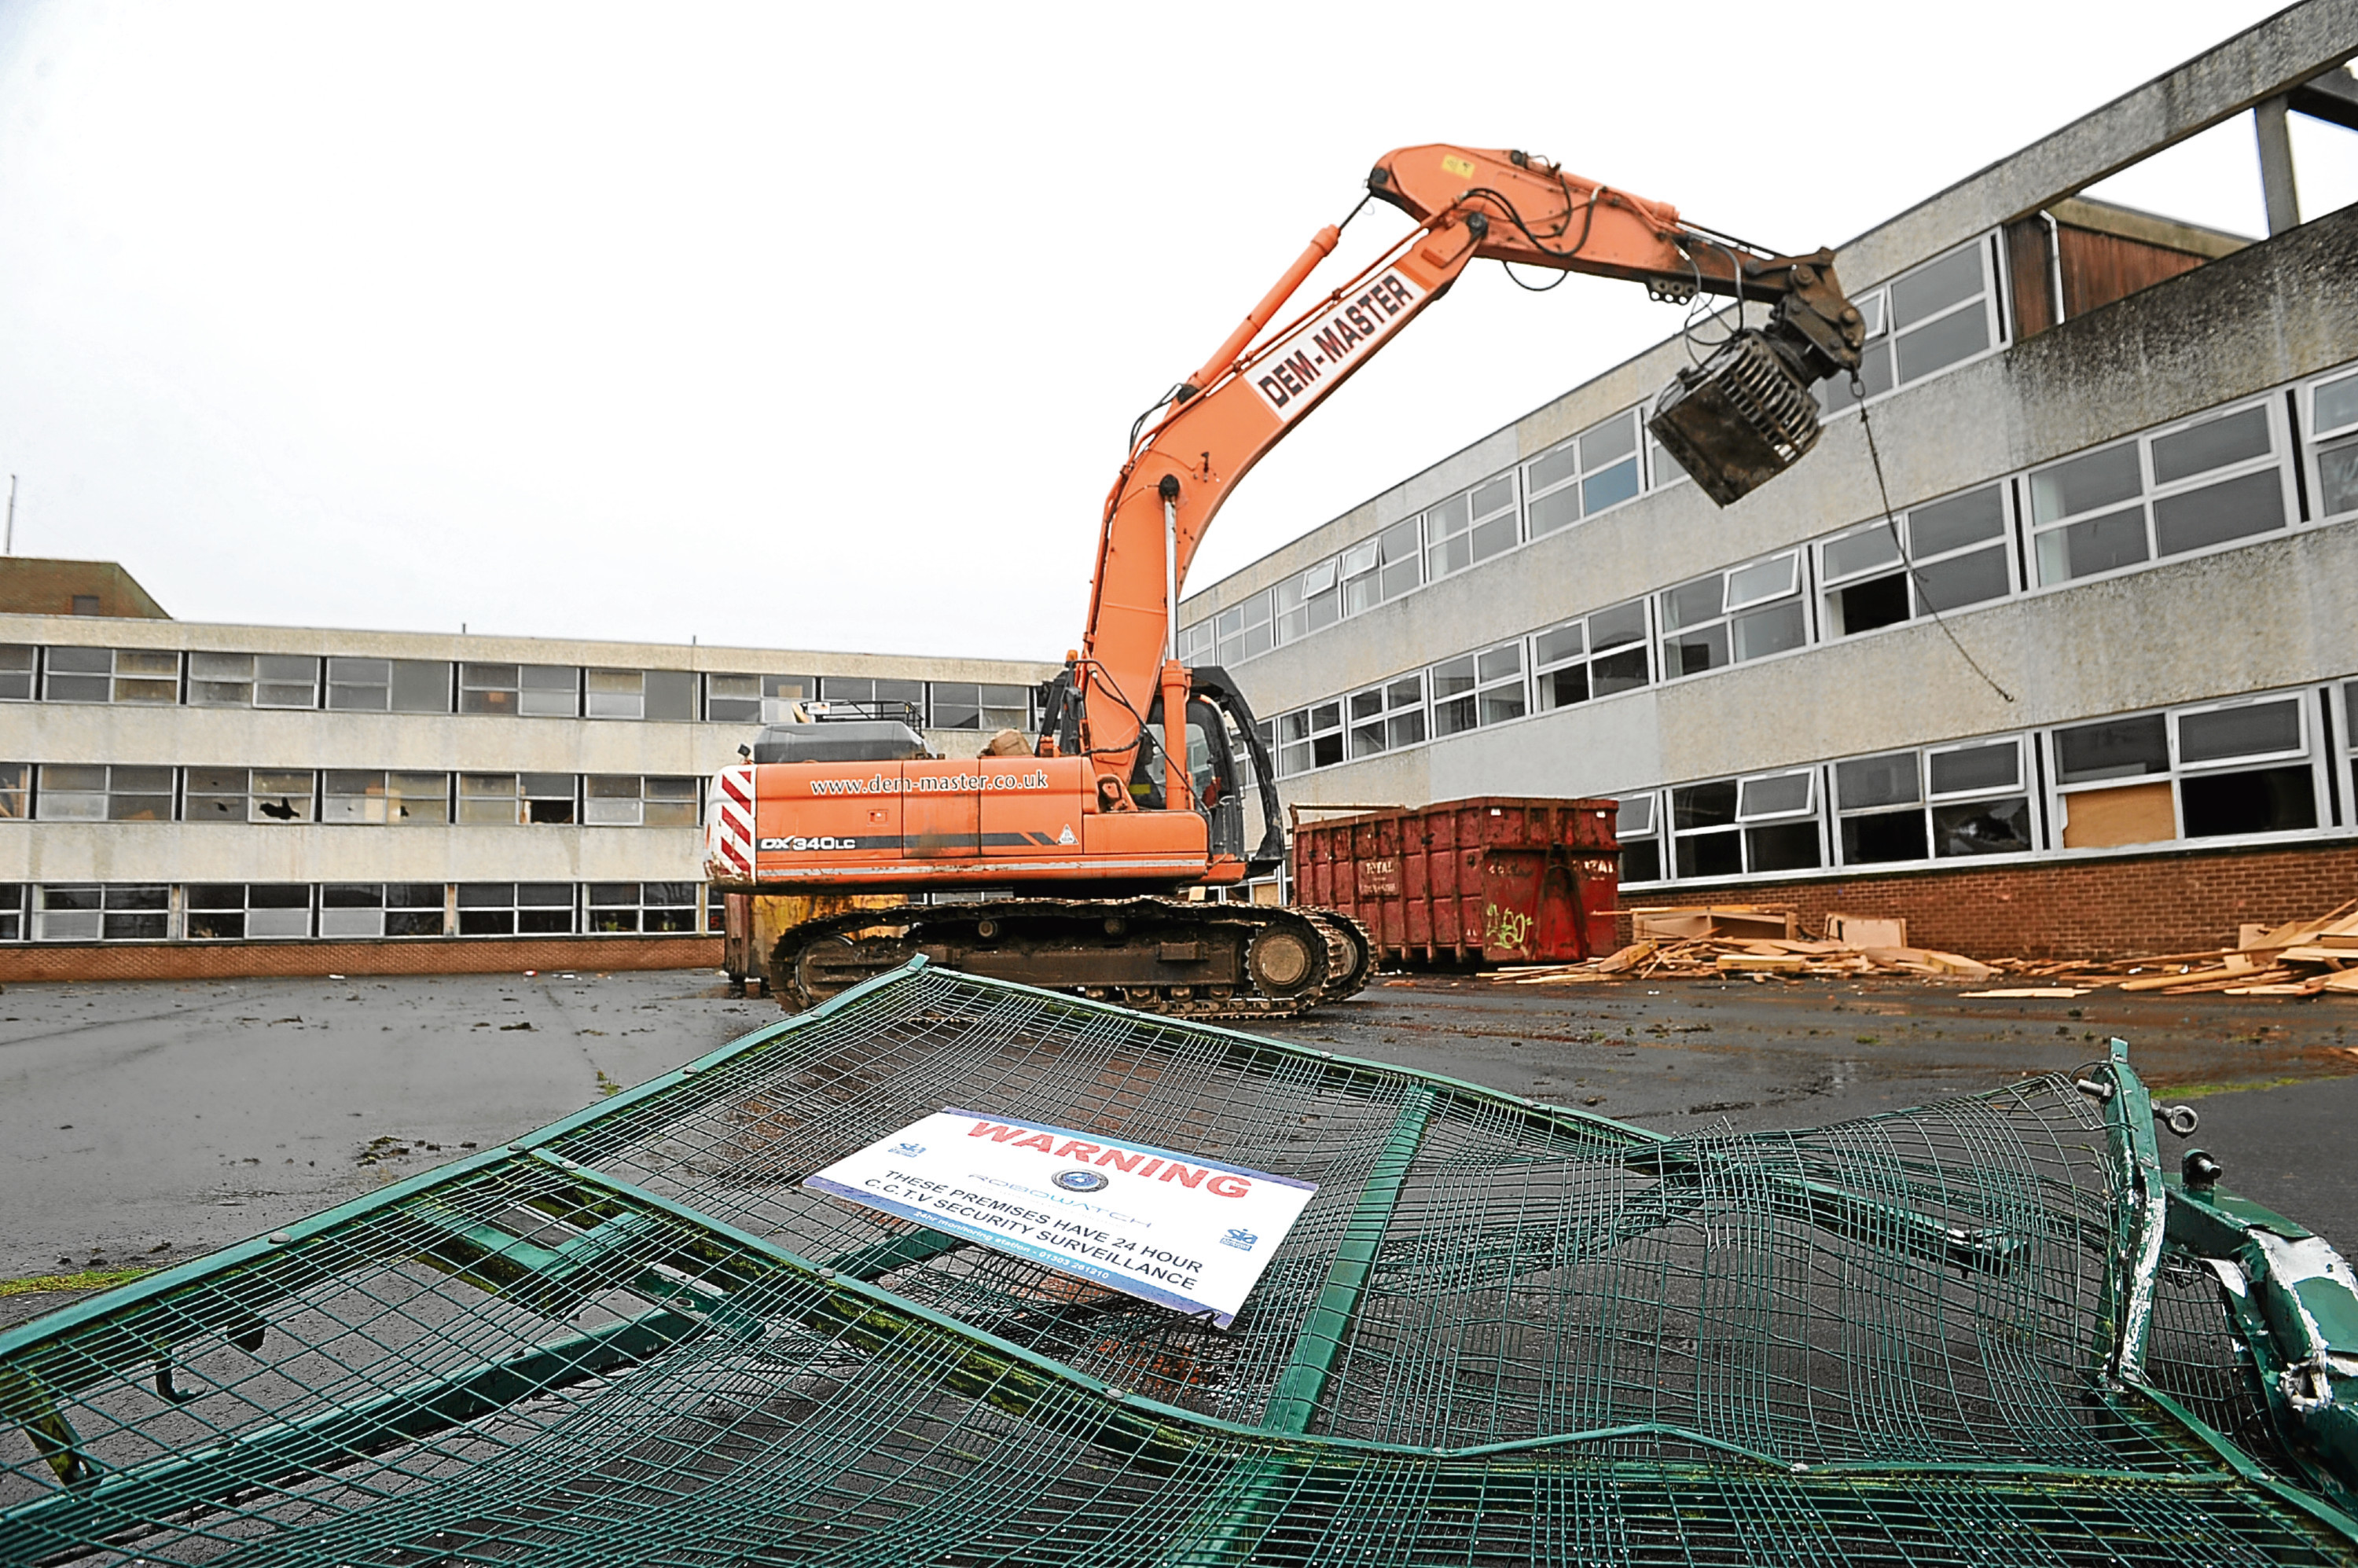 Demolition work continued on the former Menzieshill High School